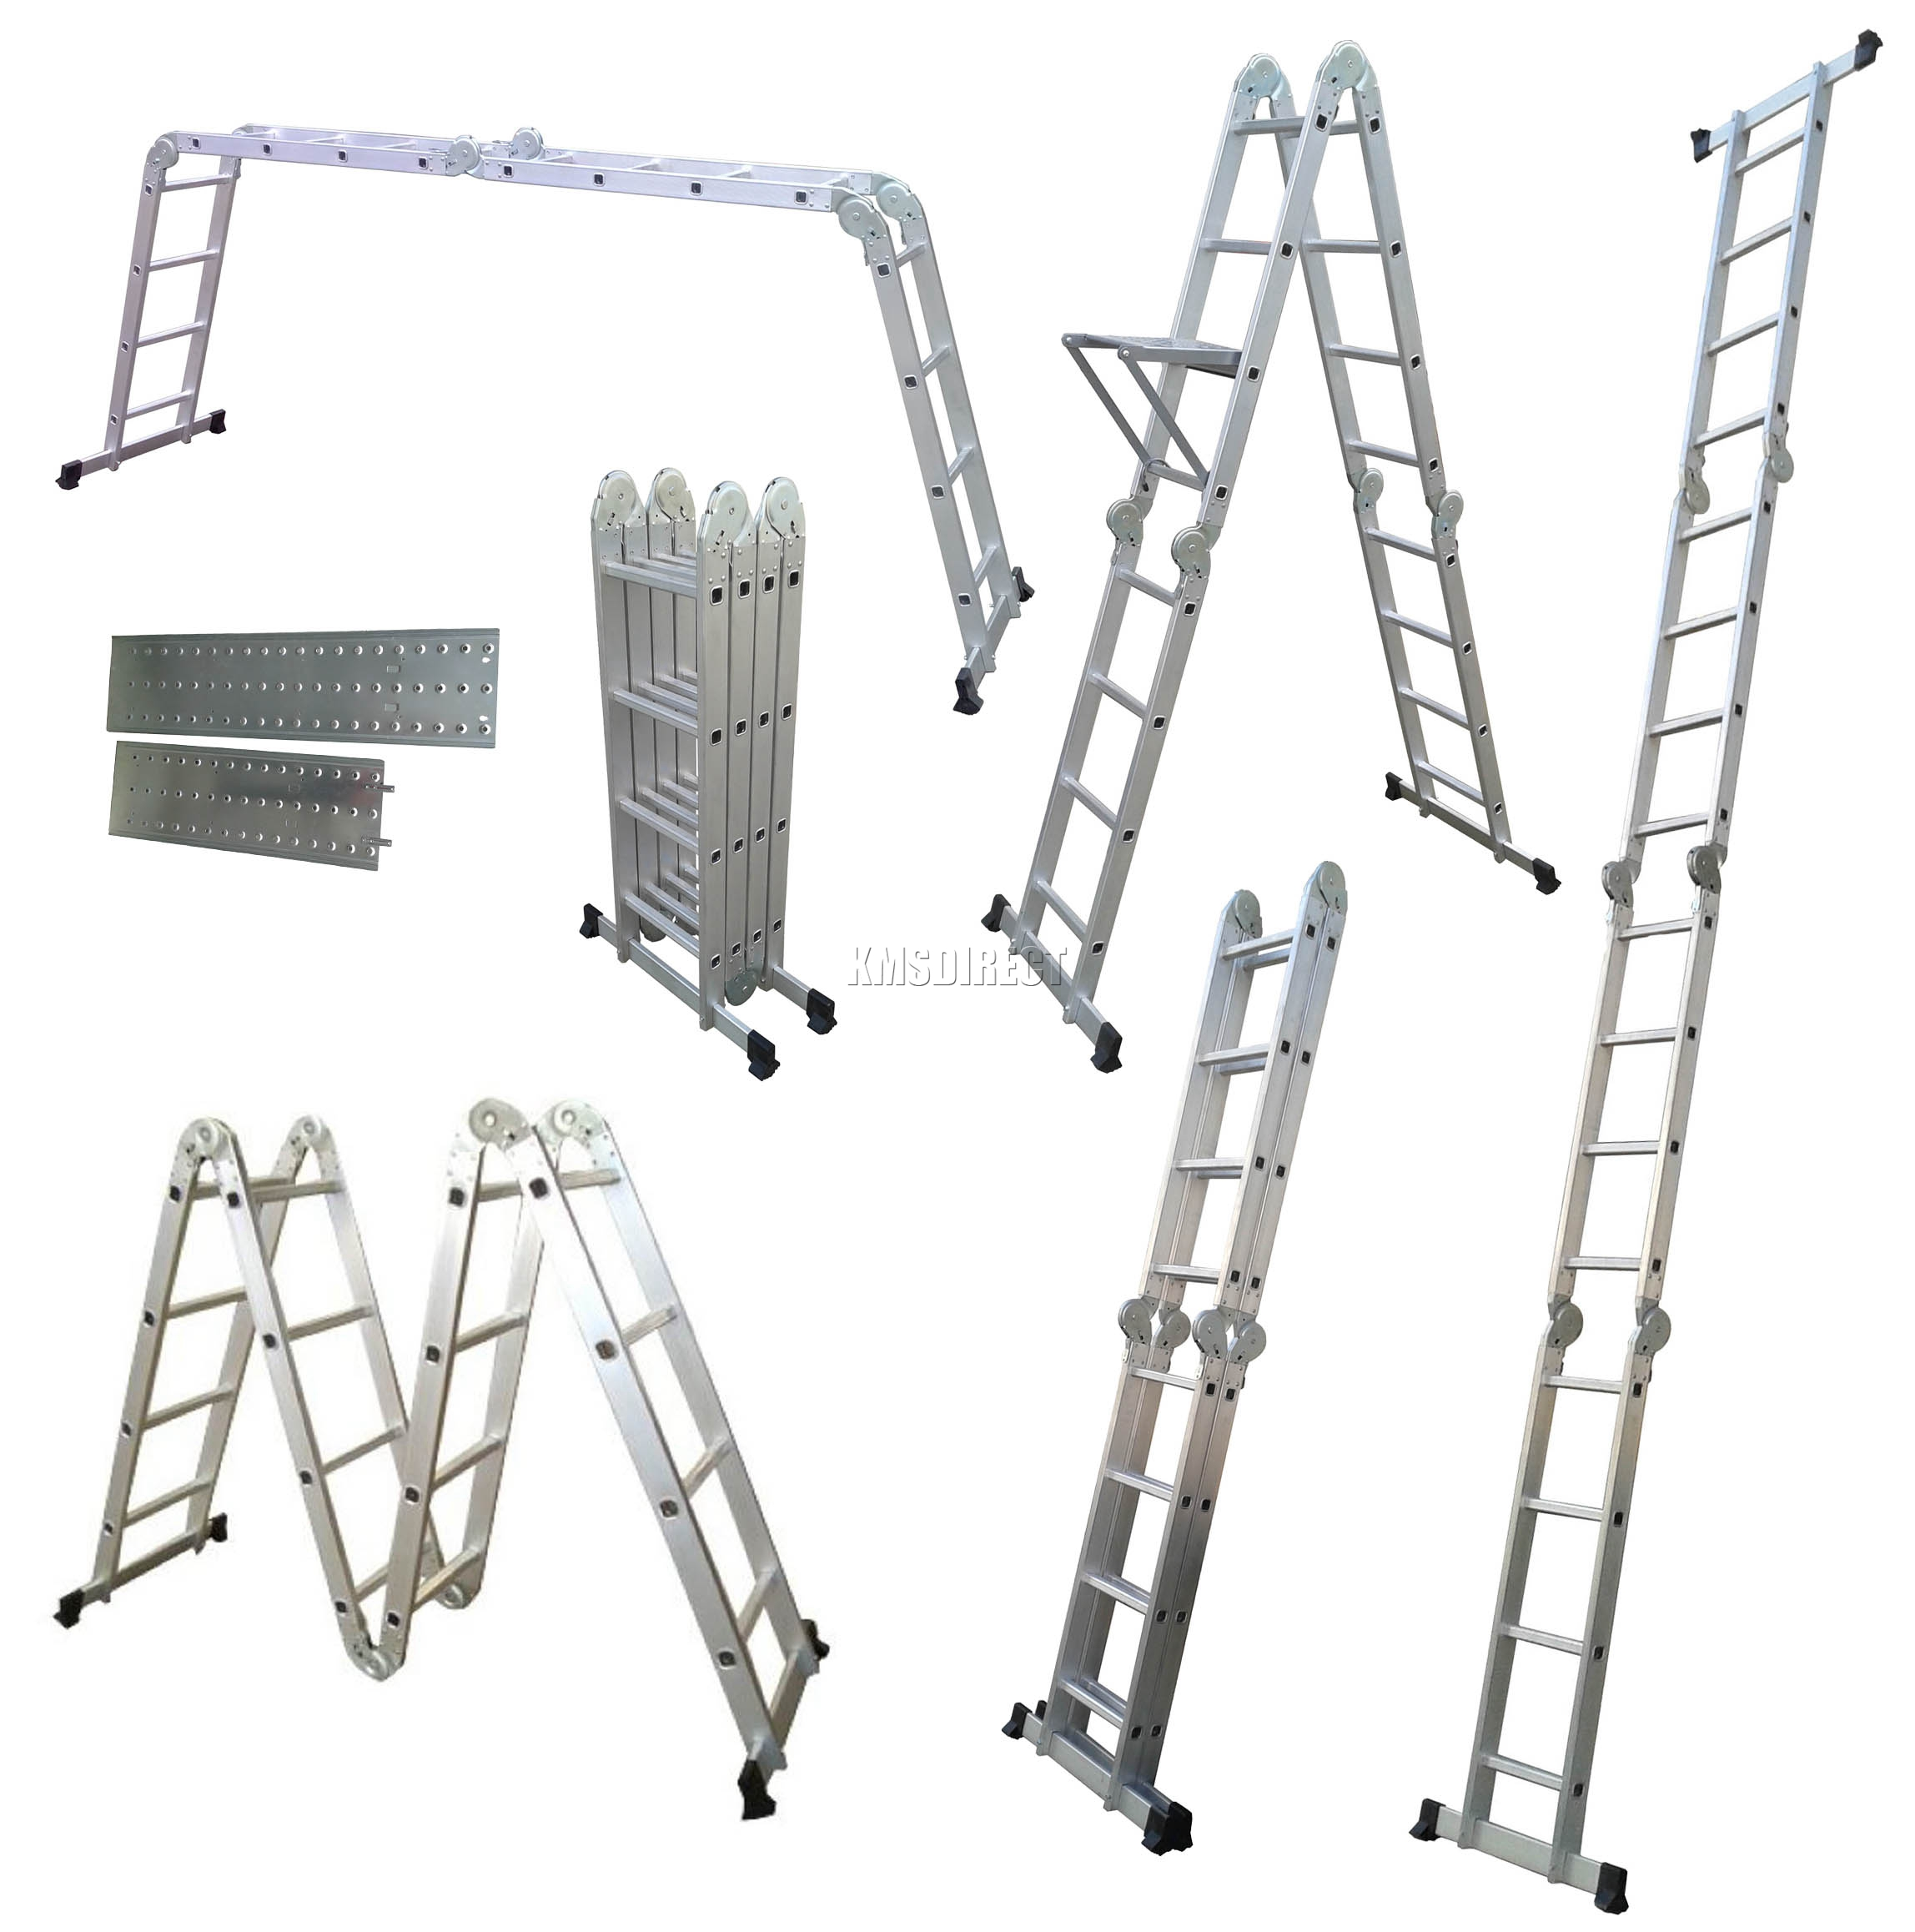 4 75m Multi Purpose Aluminium Extension Scaffold Ladder